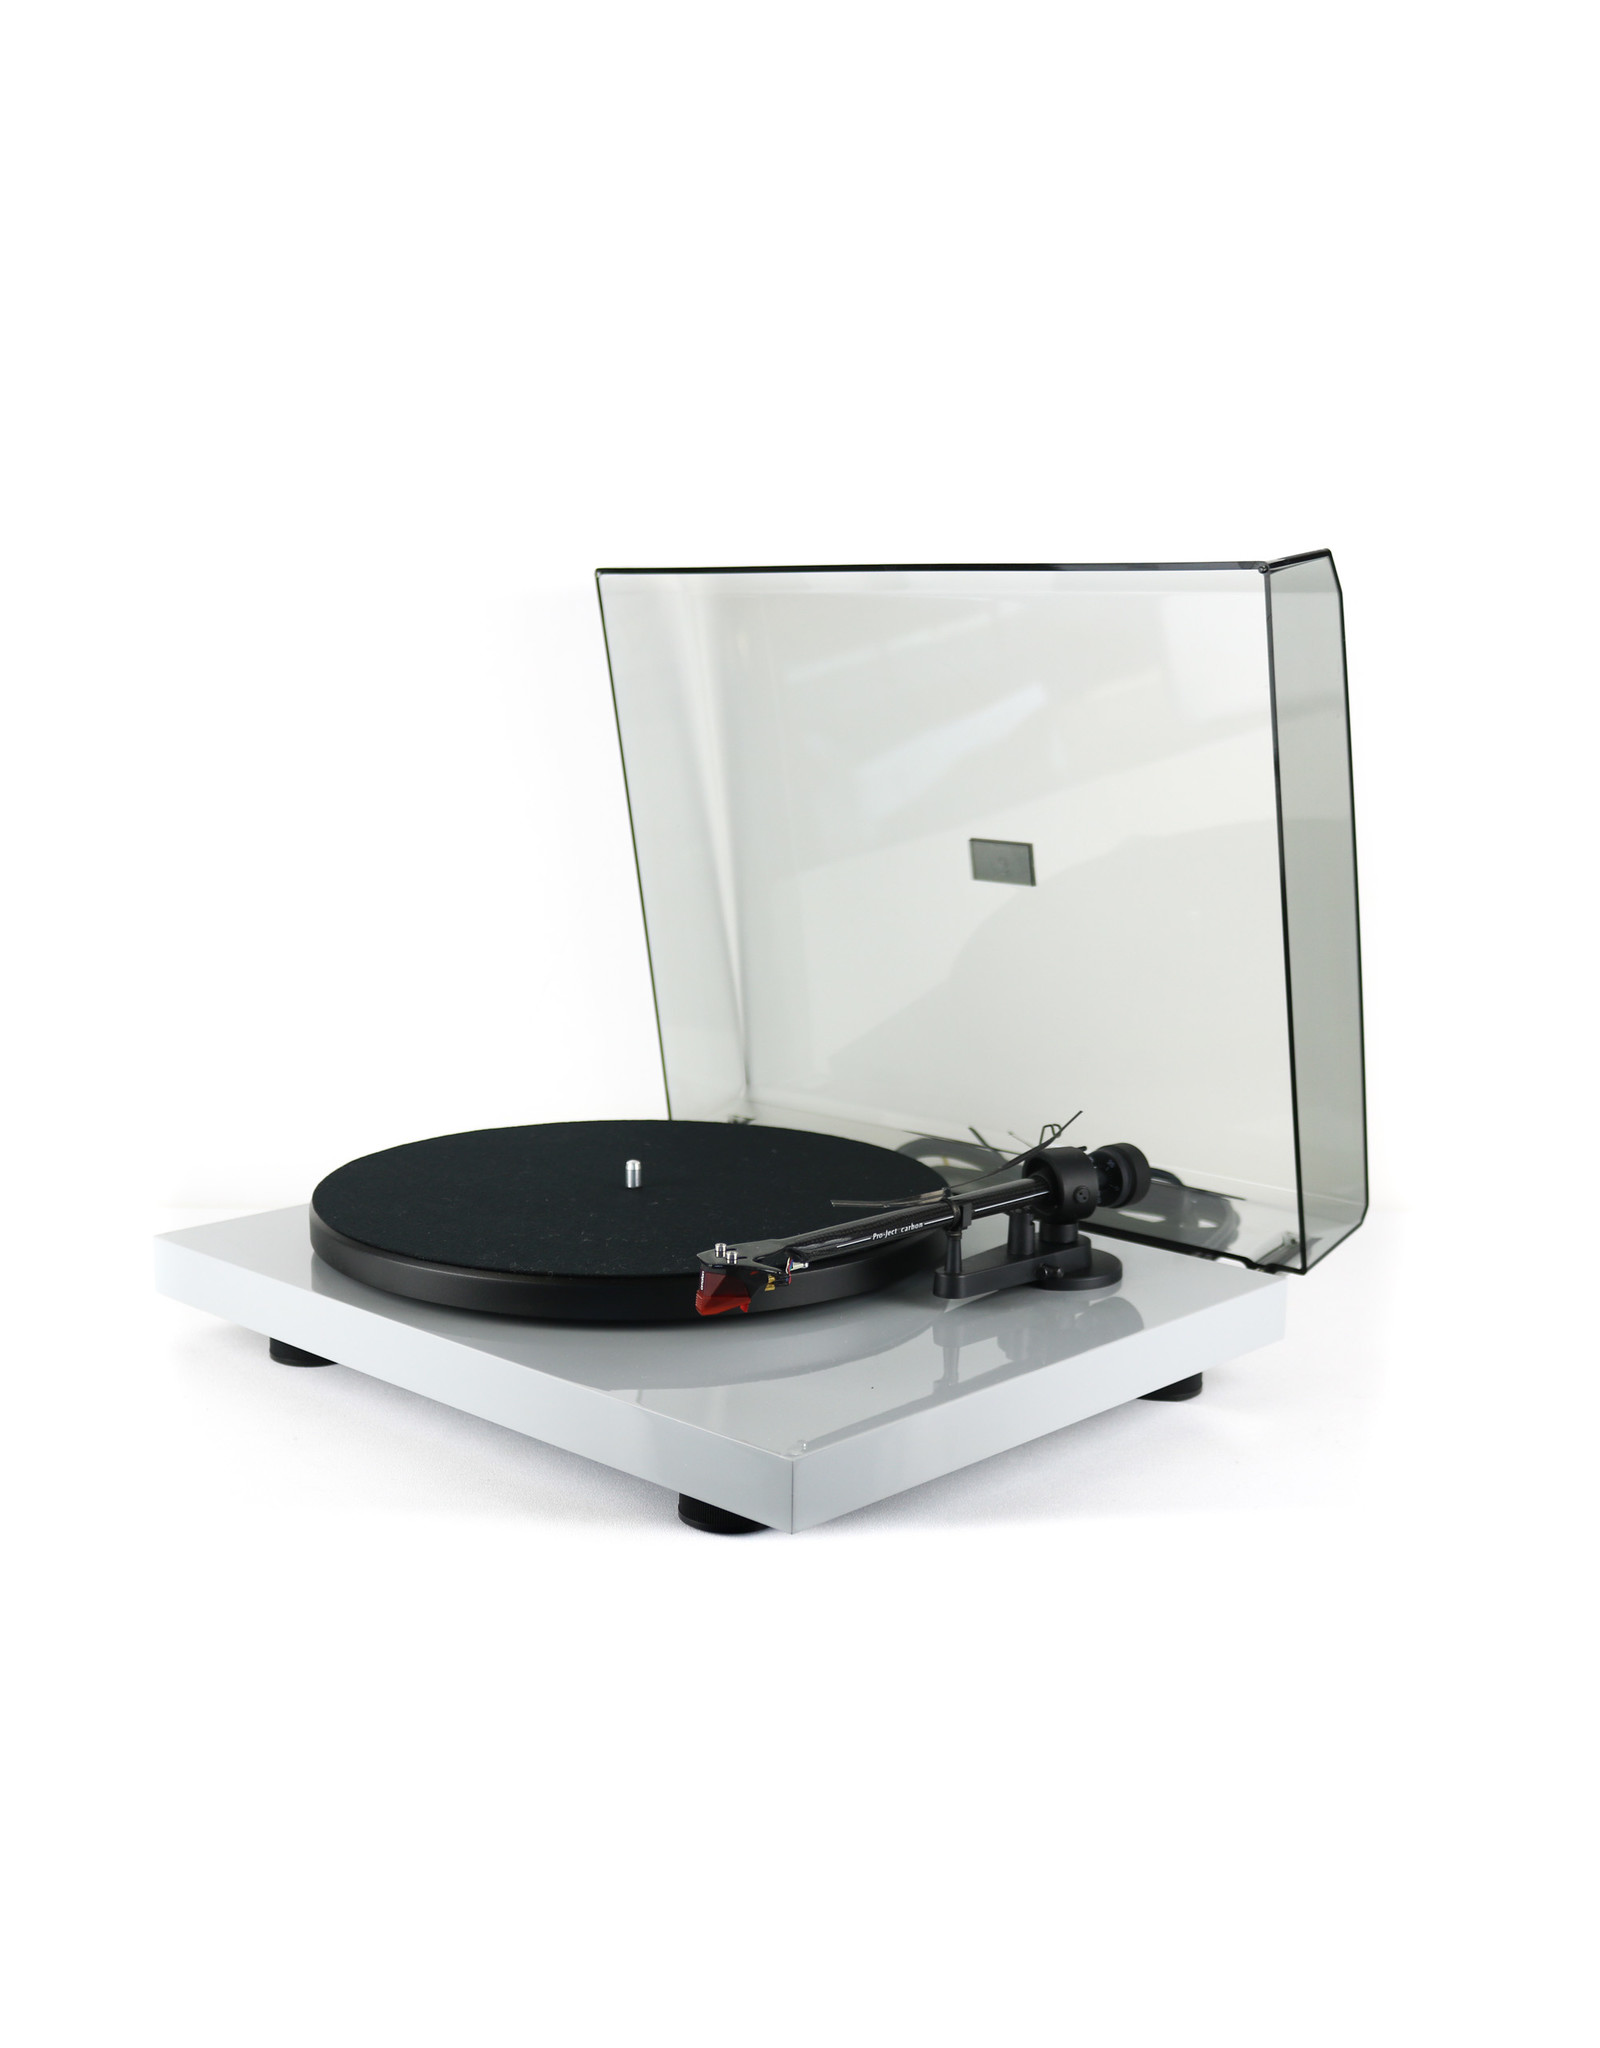 Pro-Ject Pro-Ject Debut Carbon DC Turntable Silver USED